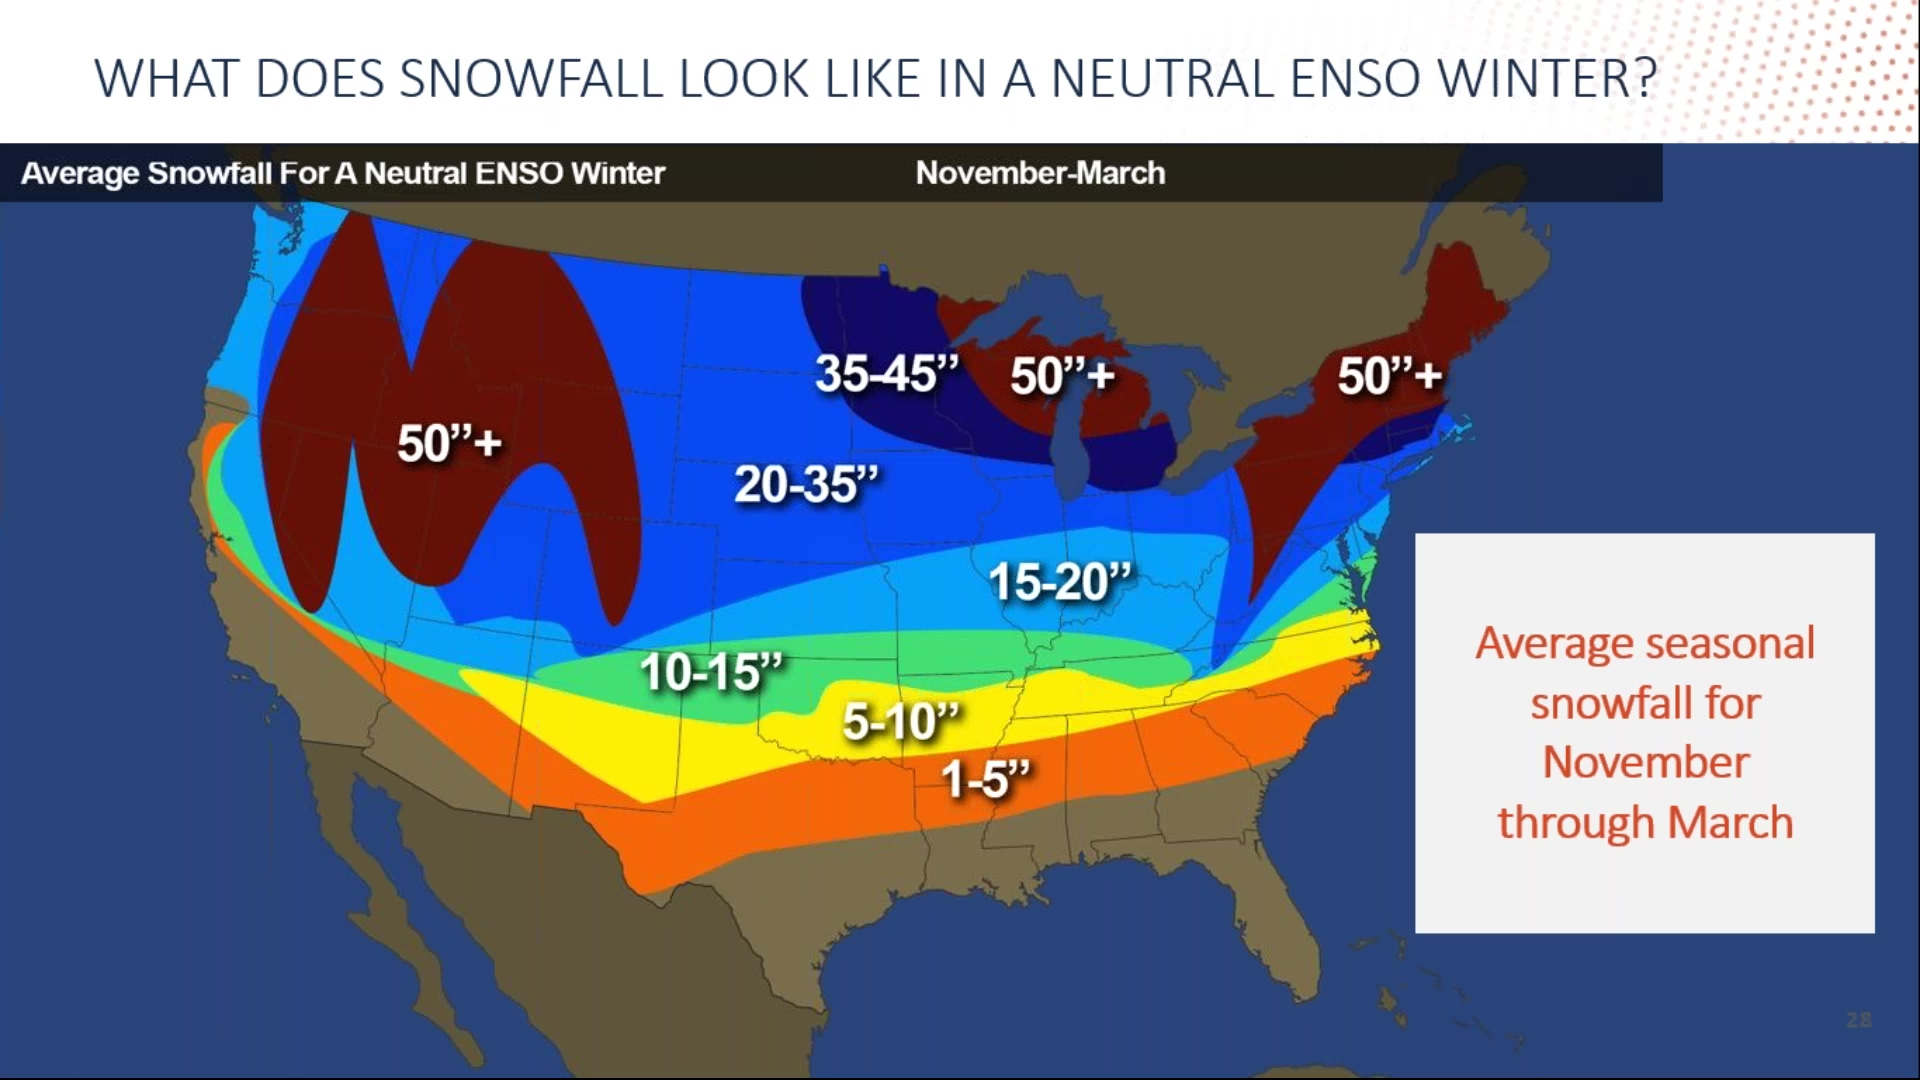 EARTH NETWORKS 2019-20 WINTER OUTLOOK